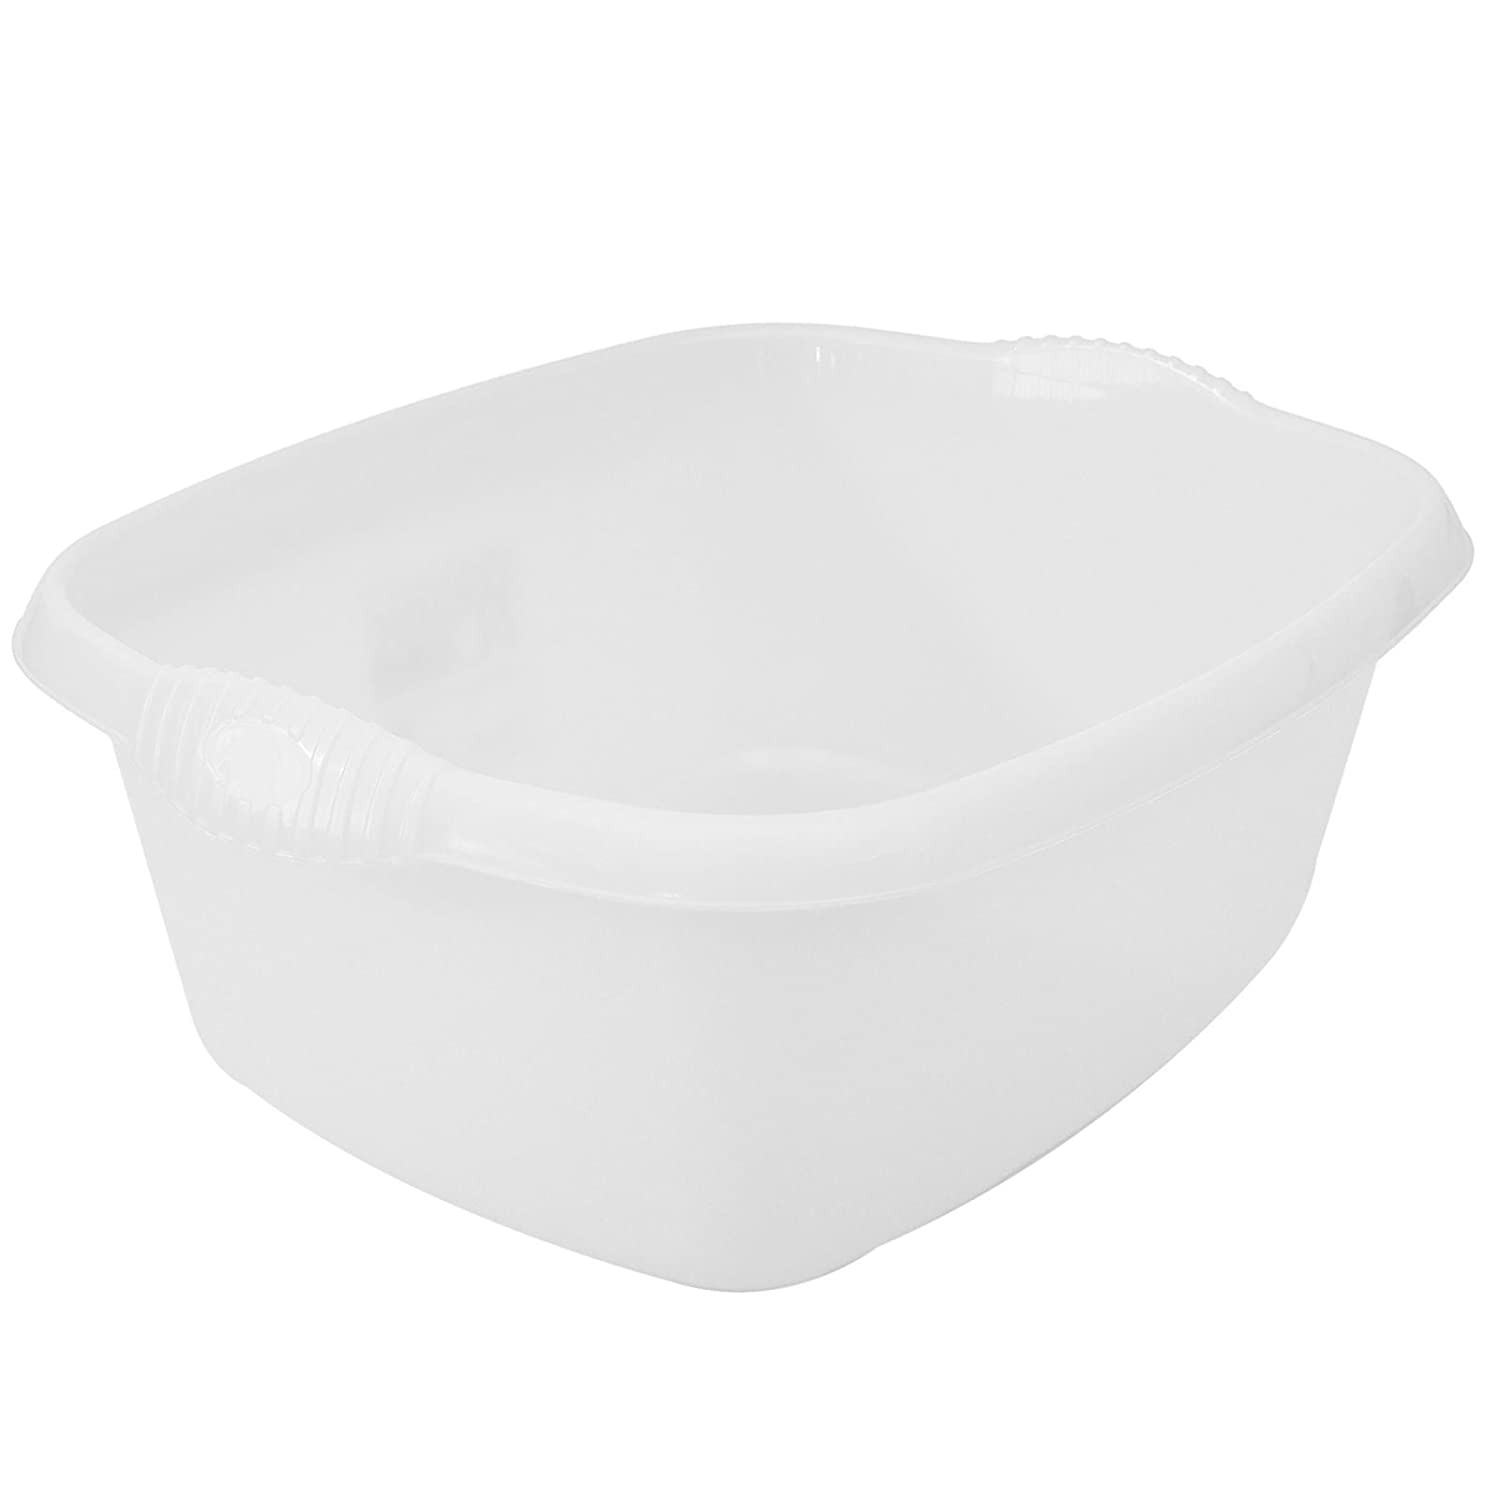 ASAB 38cm Rectangle Washing Up Bowl Sink Basin Medium Mixing High Grade Plastic With Raised Feet To Aid In Drainage Ideal Wash Up Bowl For Camping - White